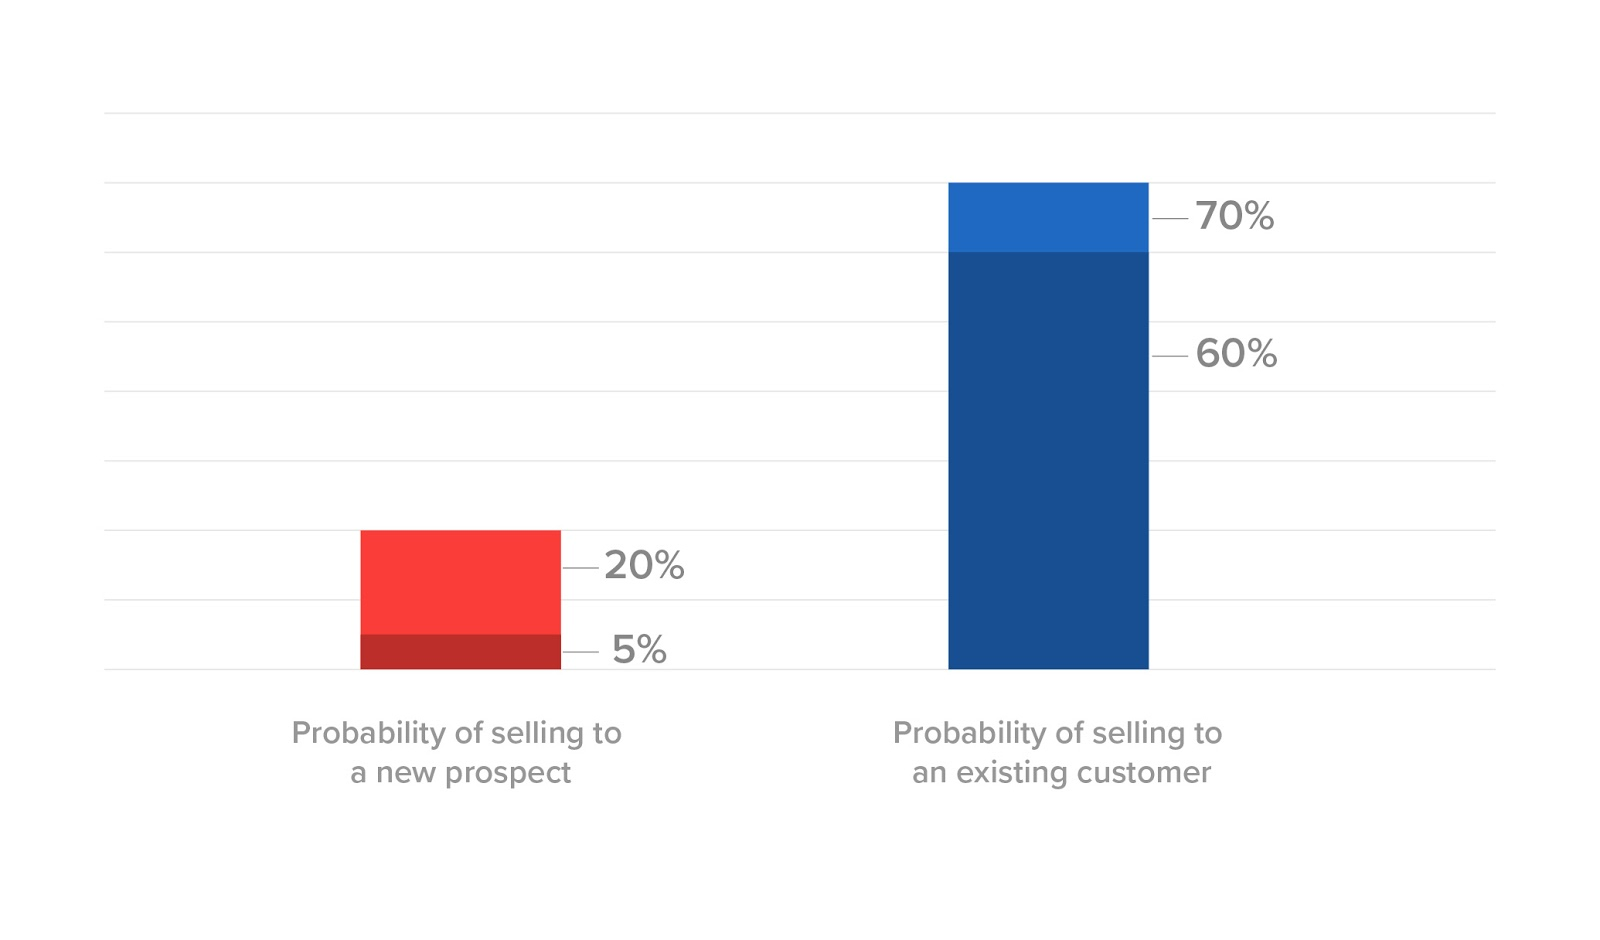 probability-of-selling-to-new-prospect-vs-existing-customer